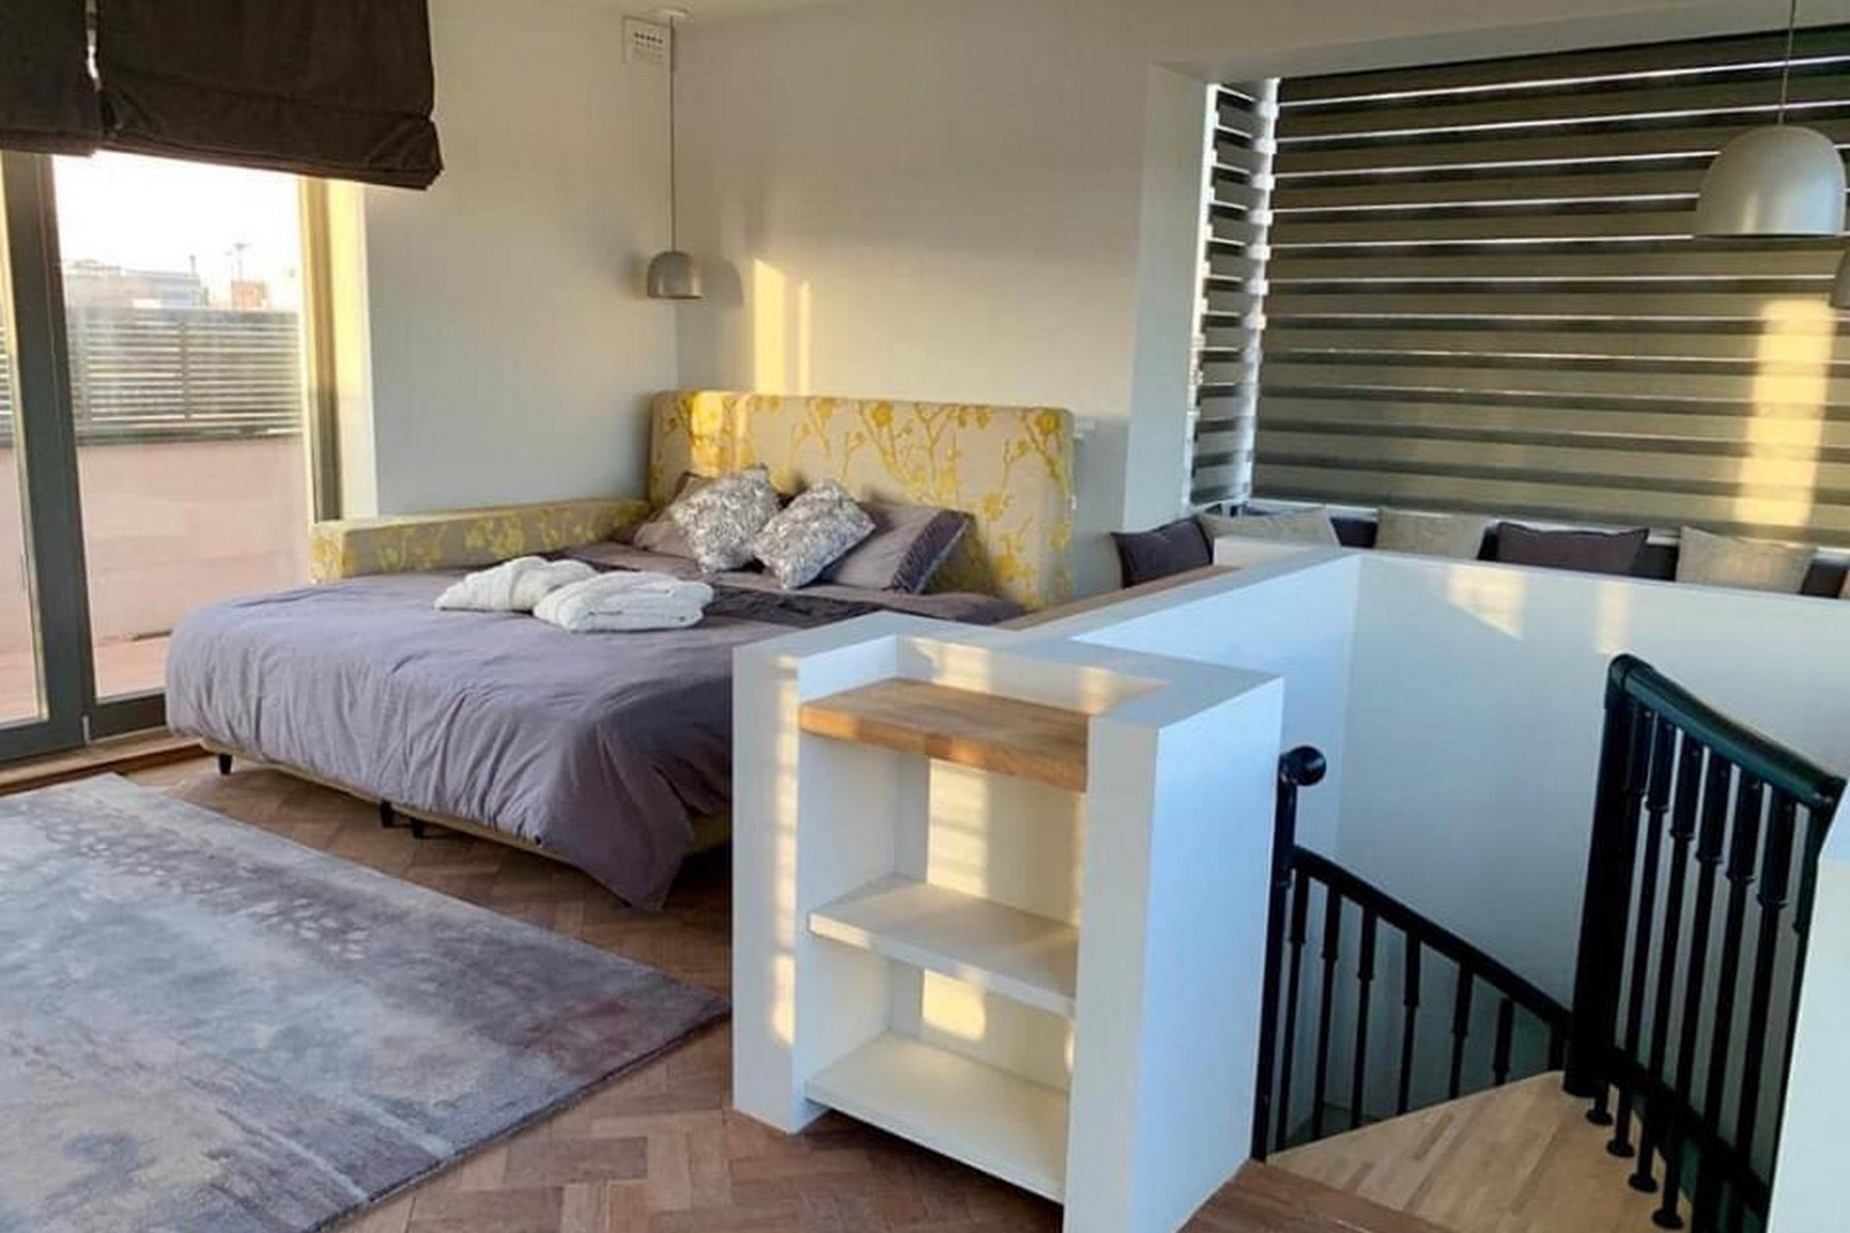 3 bed Penthouse For Rent in Rabat, Rabat - thumb 8